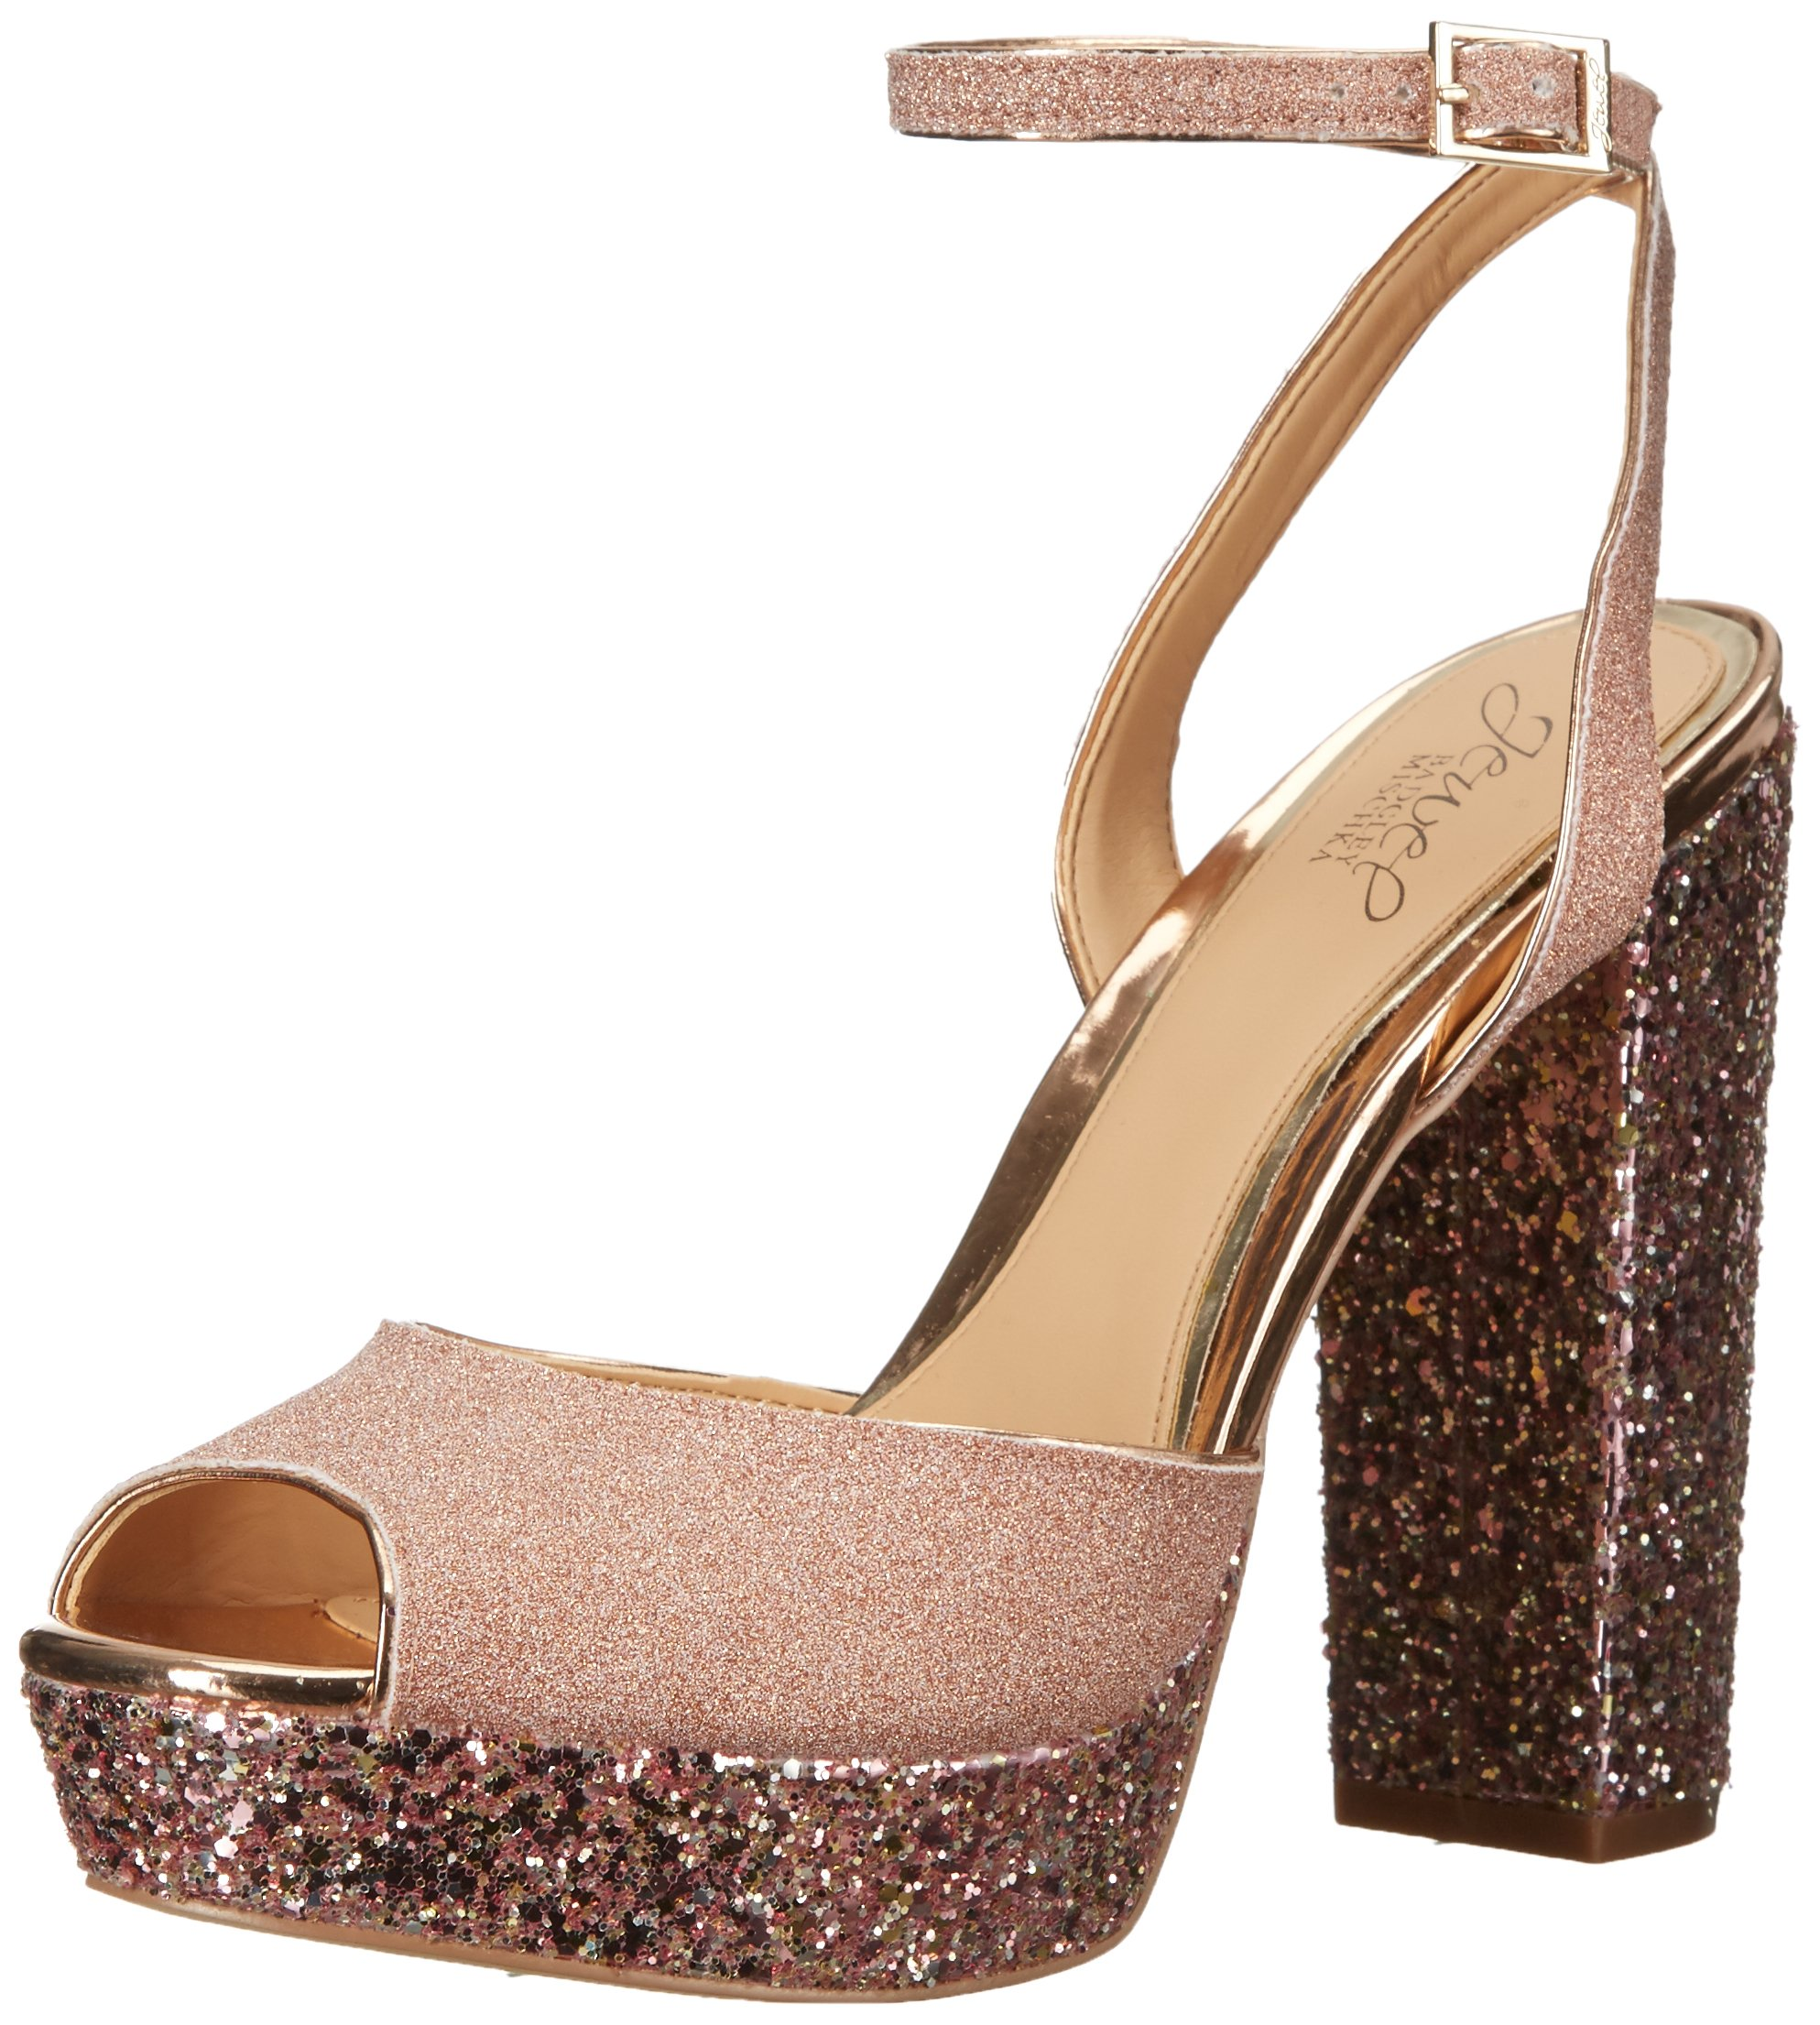 Jewel Badgley Mischka Women's Luke Heeled Sandal, Rose Gold, 8 Medium US